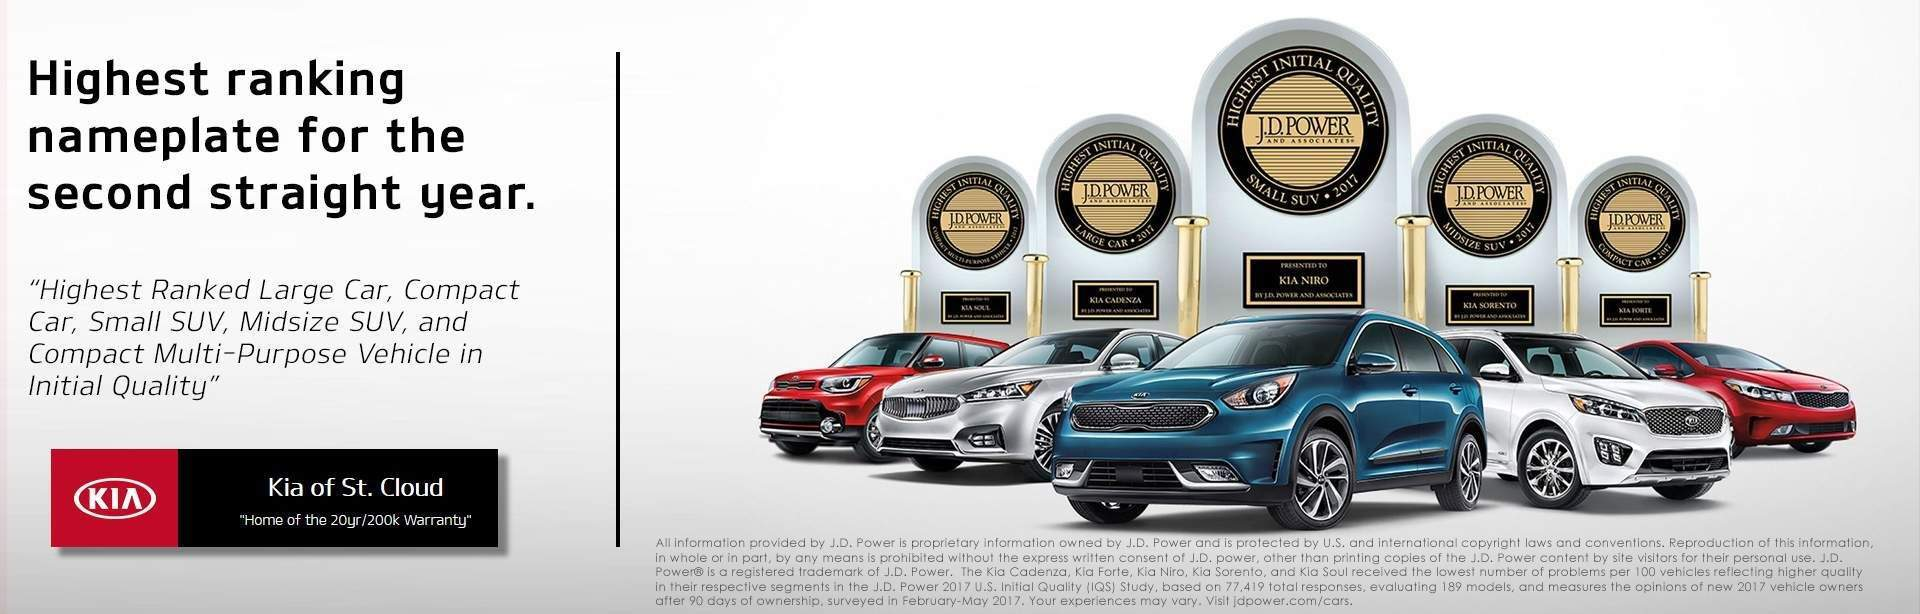 Kia JD Powers Awards